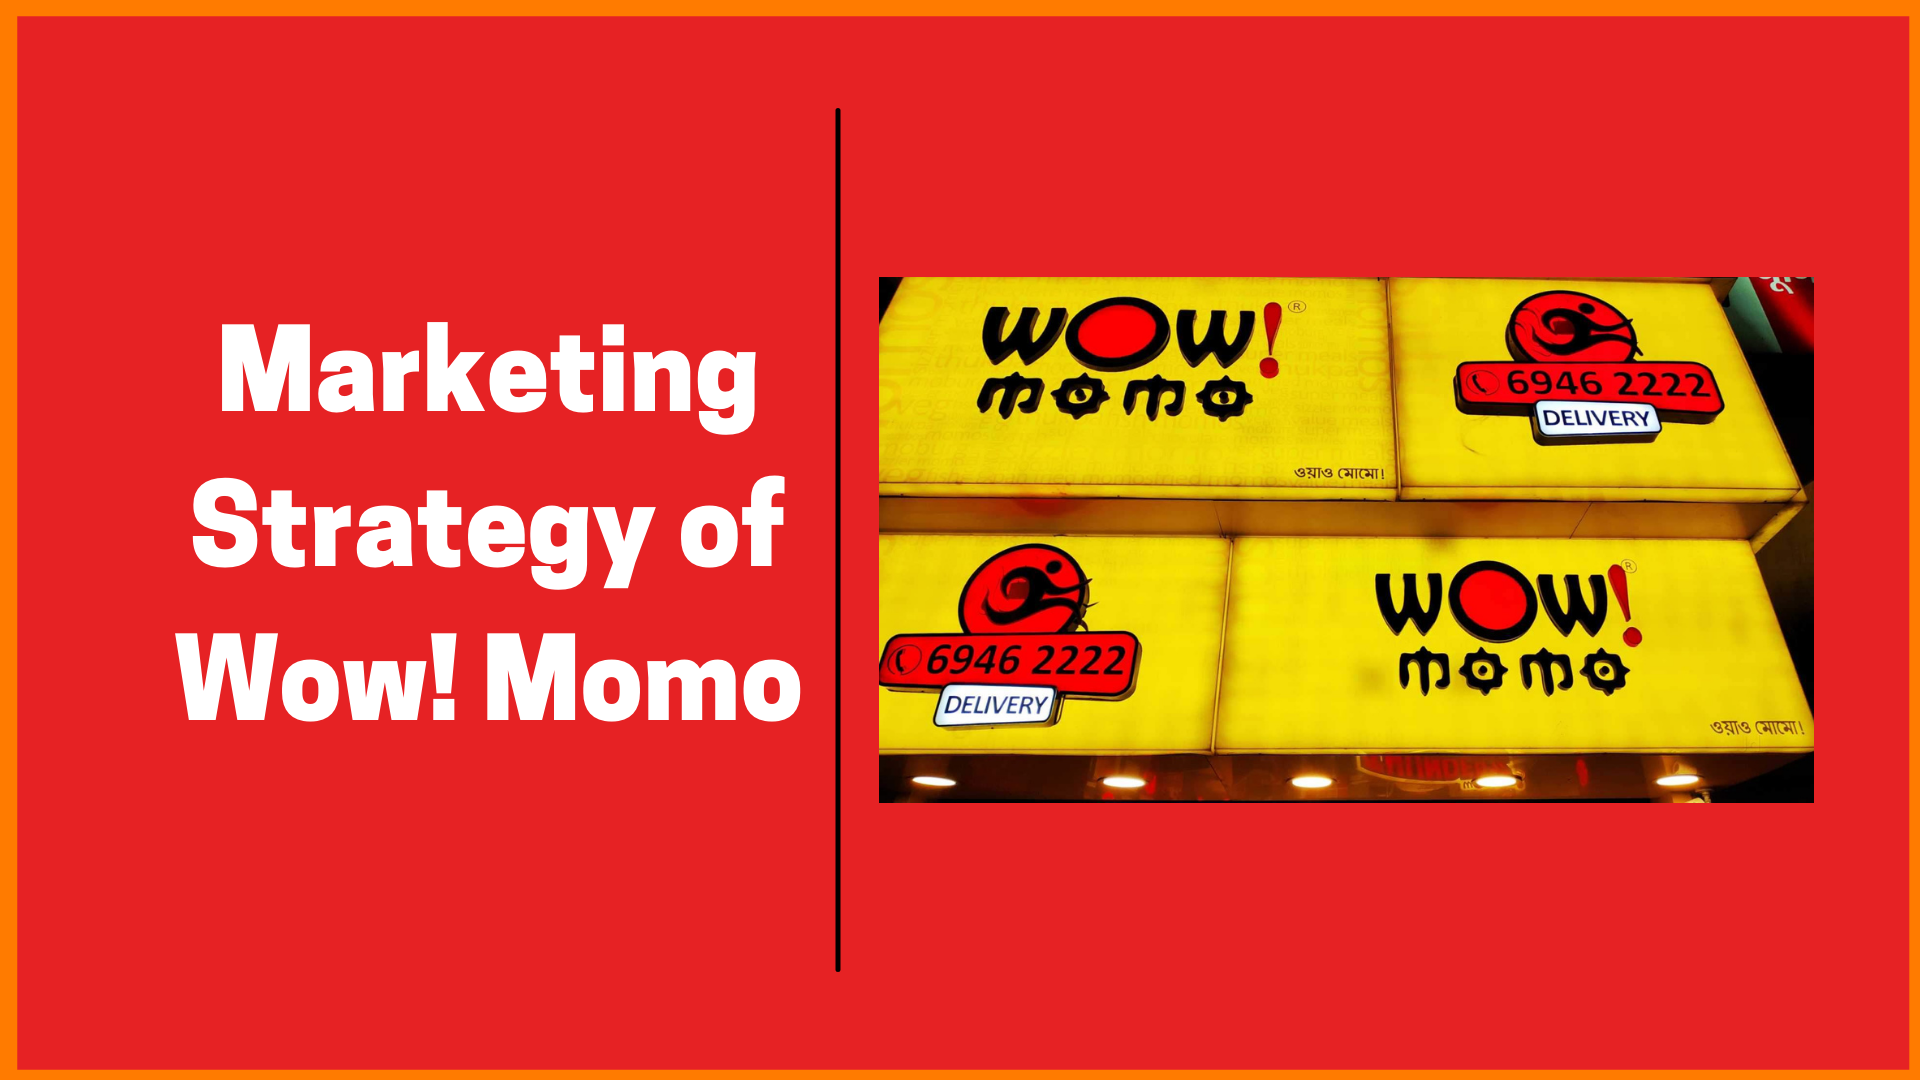 Marketing Strategy of Wow! Momo [Case Study]